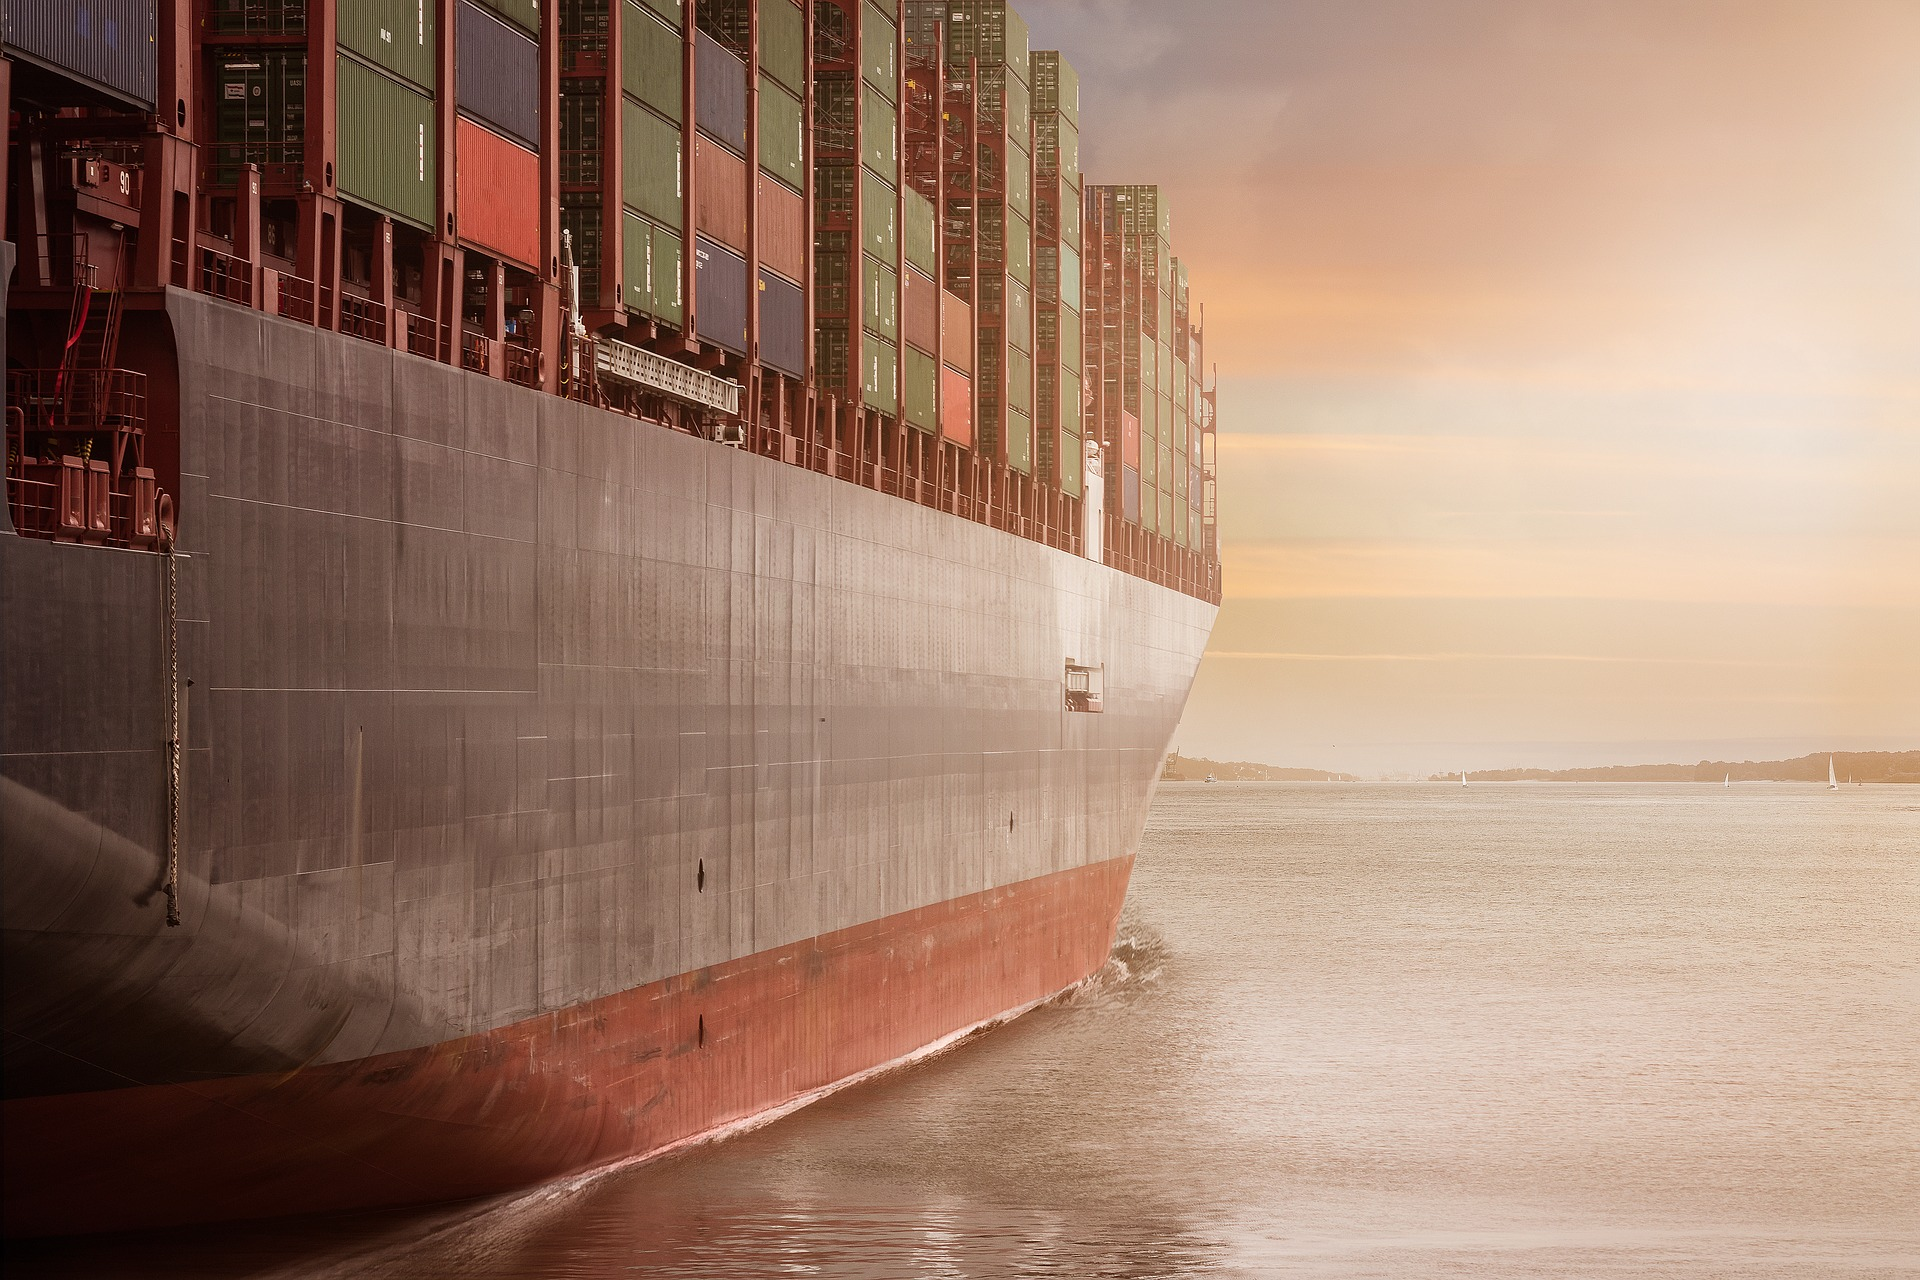 Port of Baltimore Sees Smooth Sailing in National Logjam